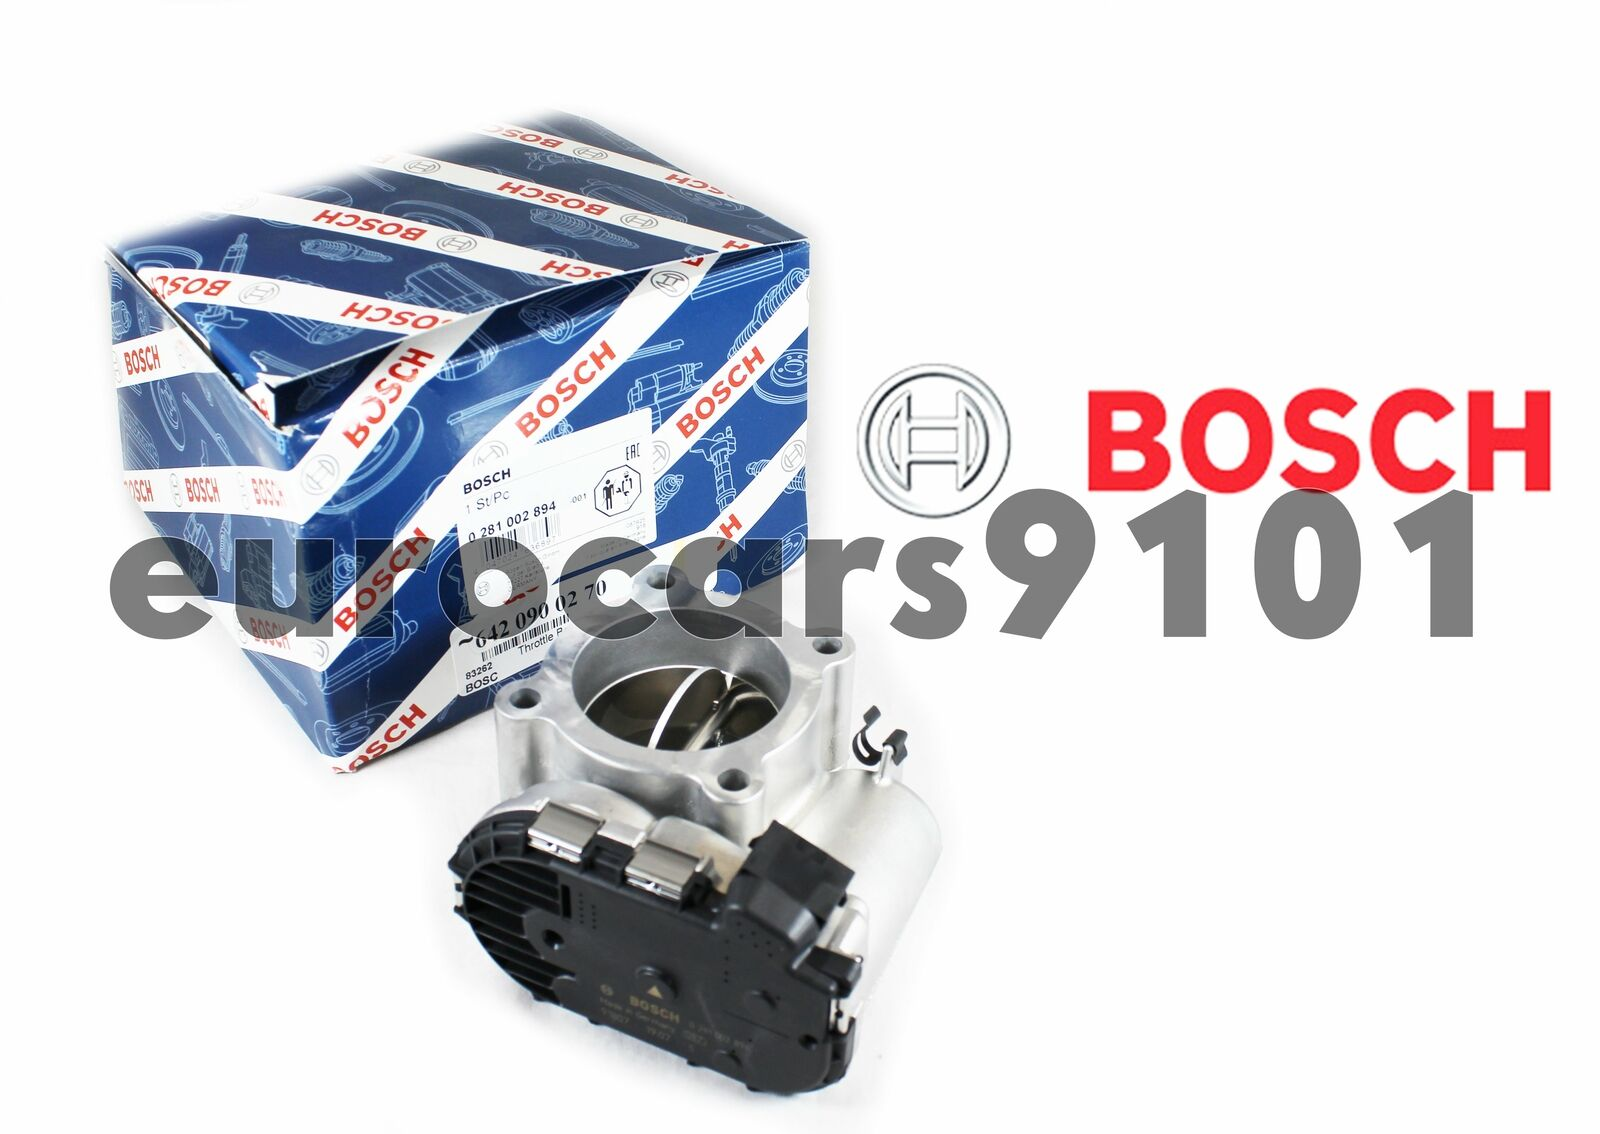 Bosch Fuel Injection Throttle Body Assembly 0281002894 6420900270 New